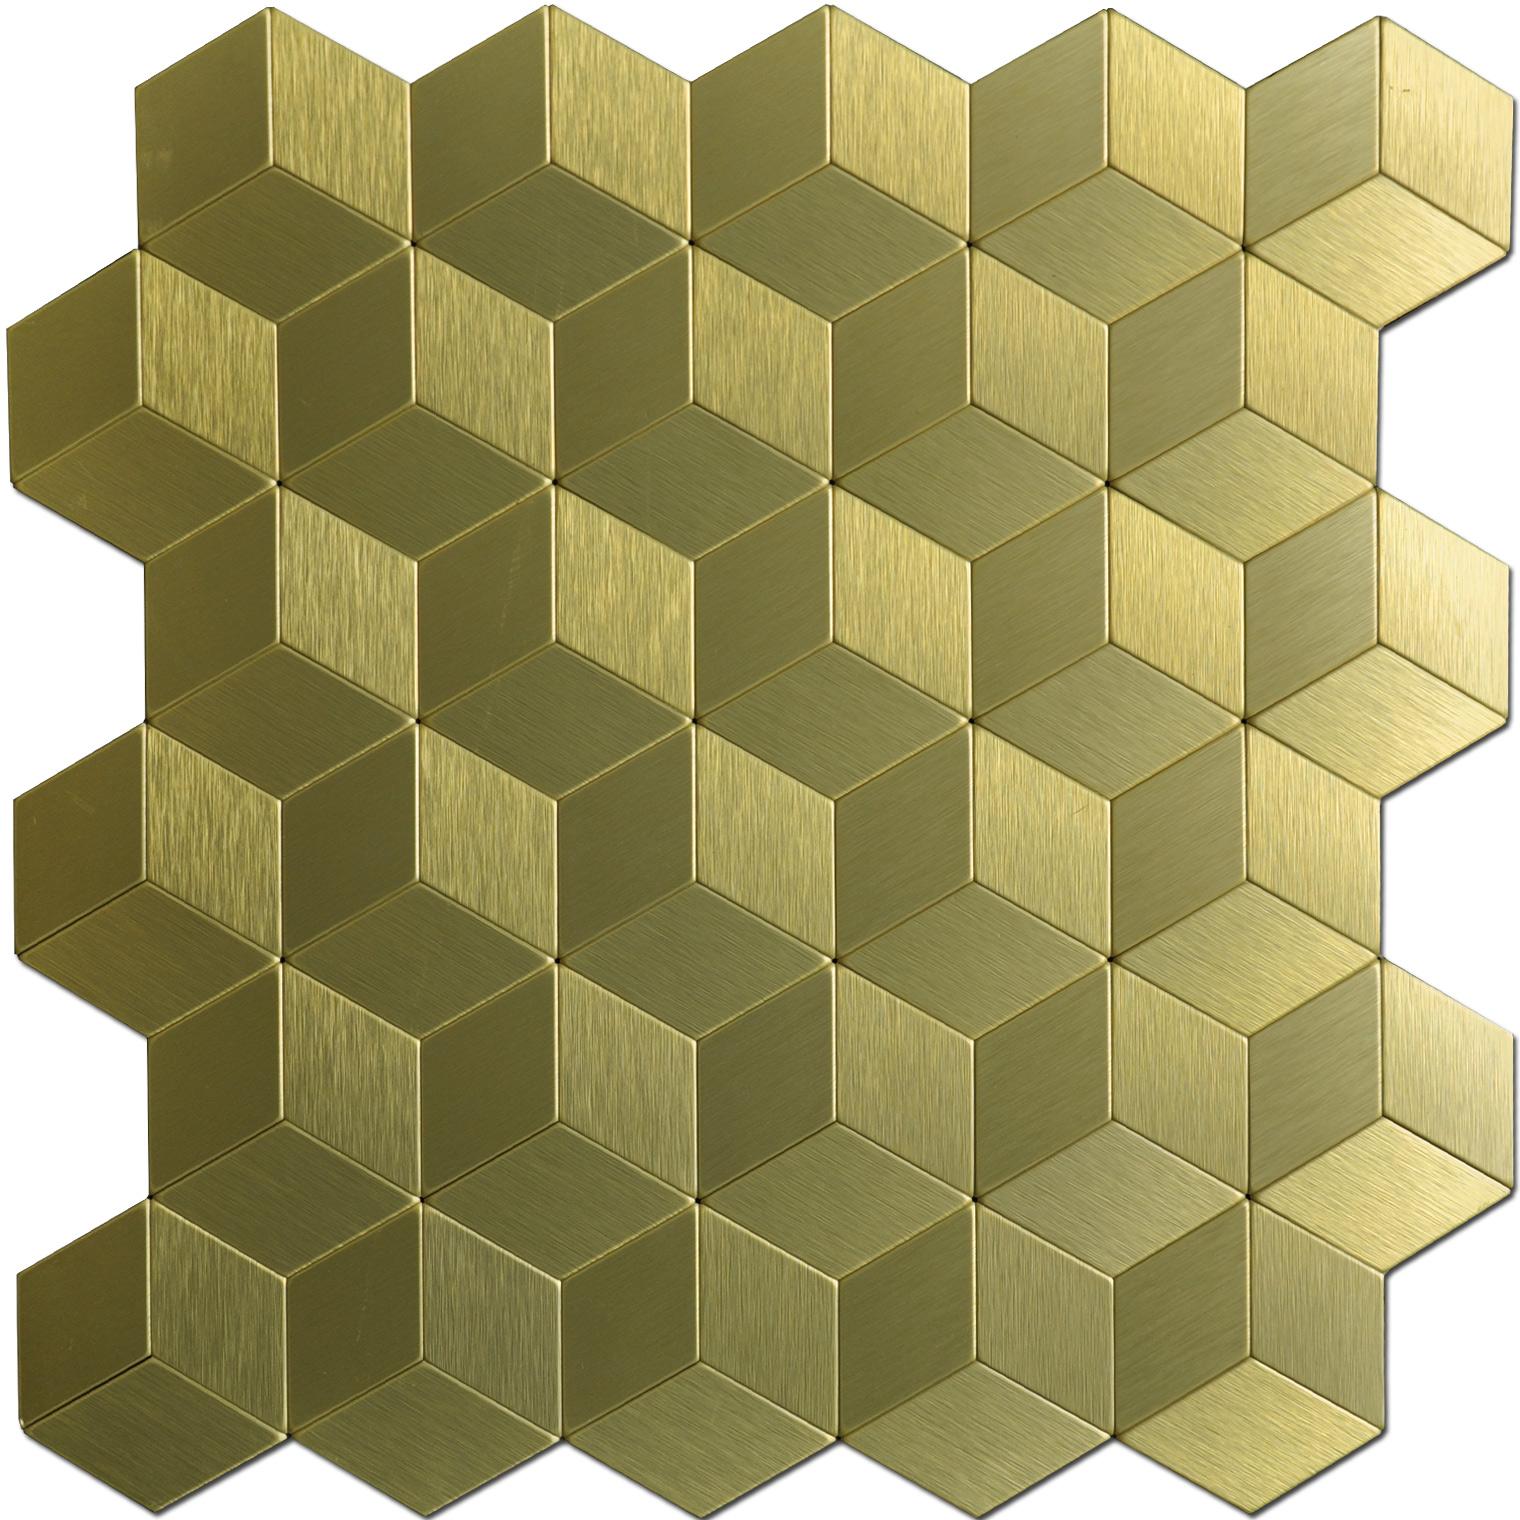 a16063 12x12in gold cube metal decorative tile peel n stick mosaic 10 sheets - Decorative Metal Sheets